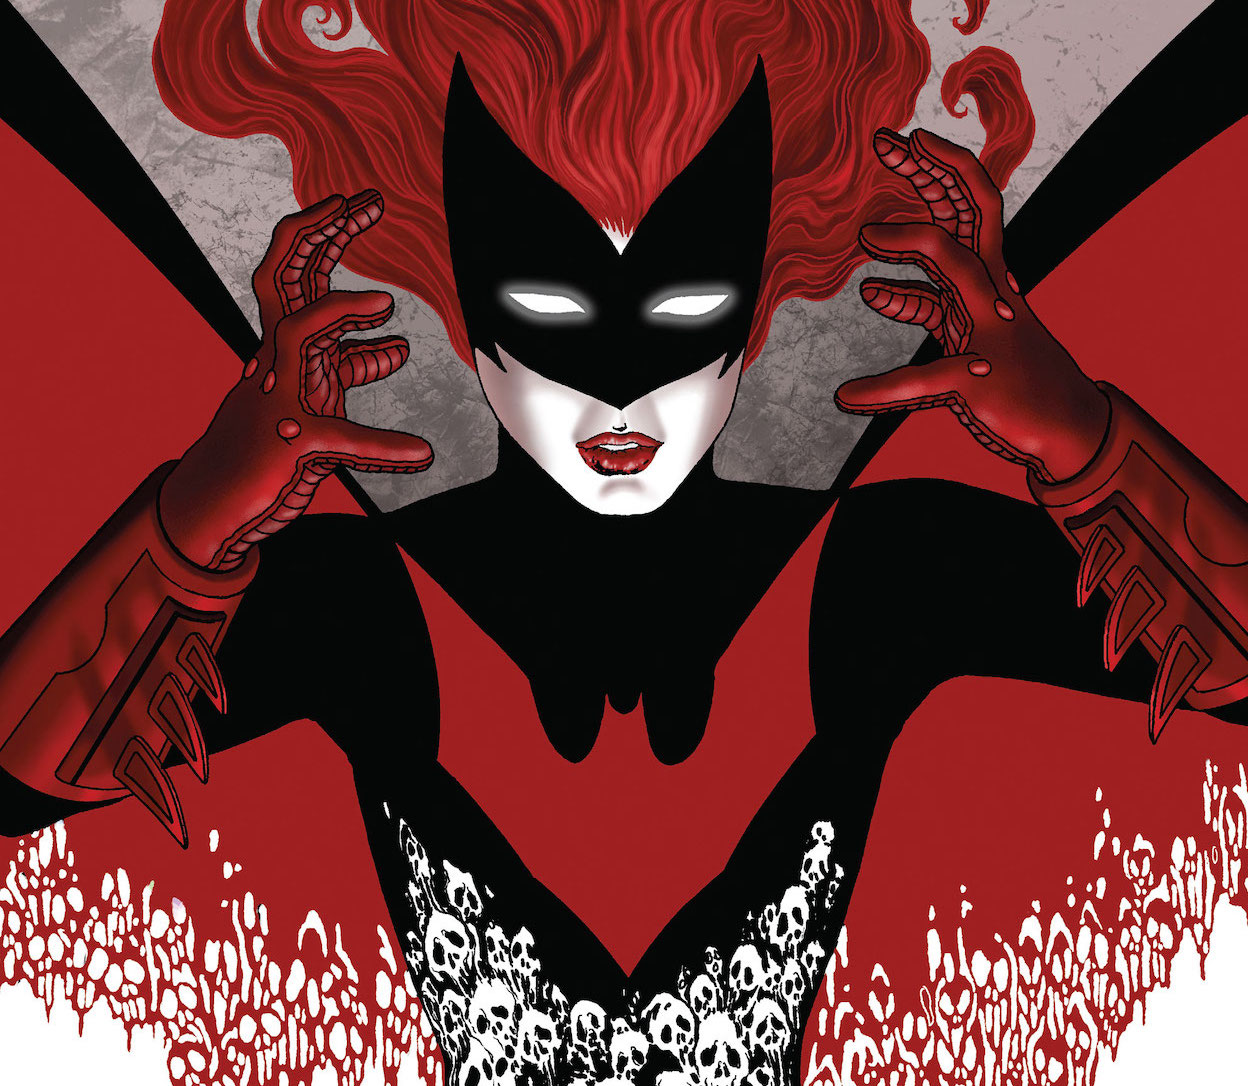 'Batman: Urban Legends' #8 features an eclectic mix of characters